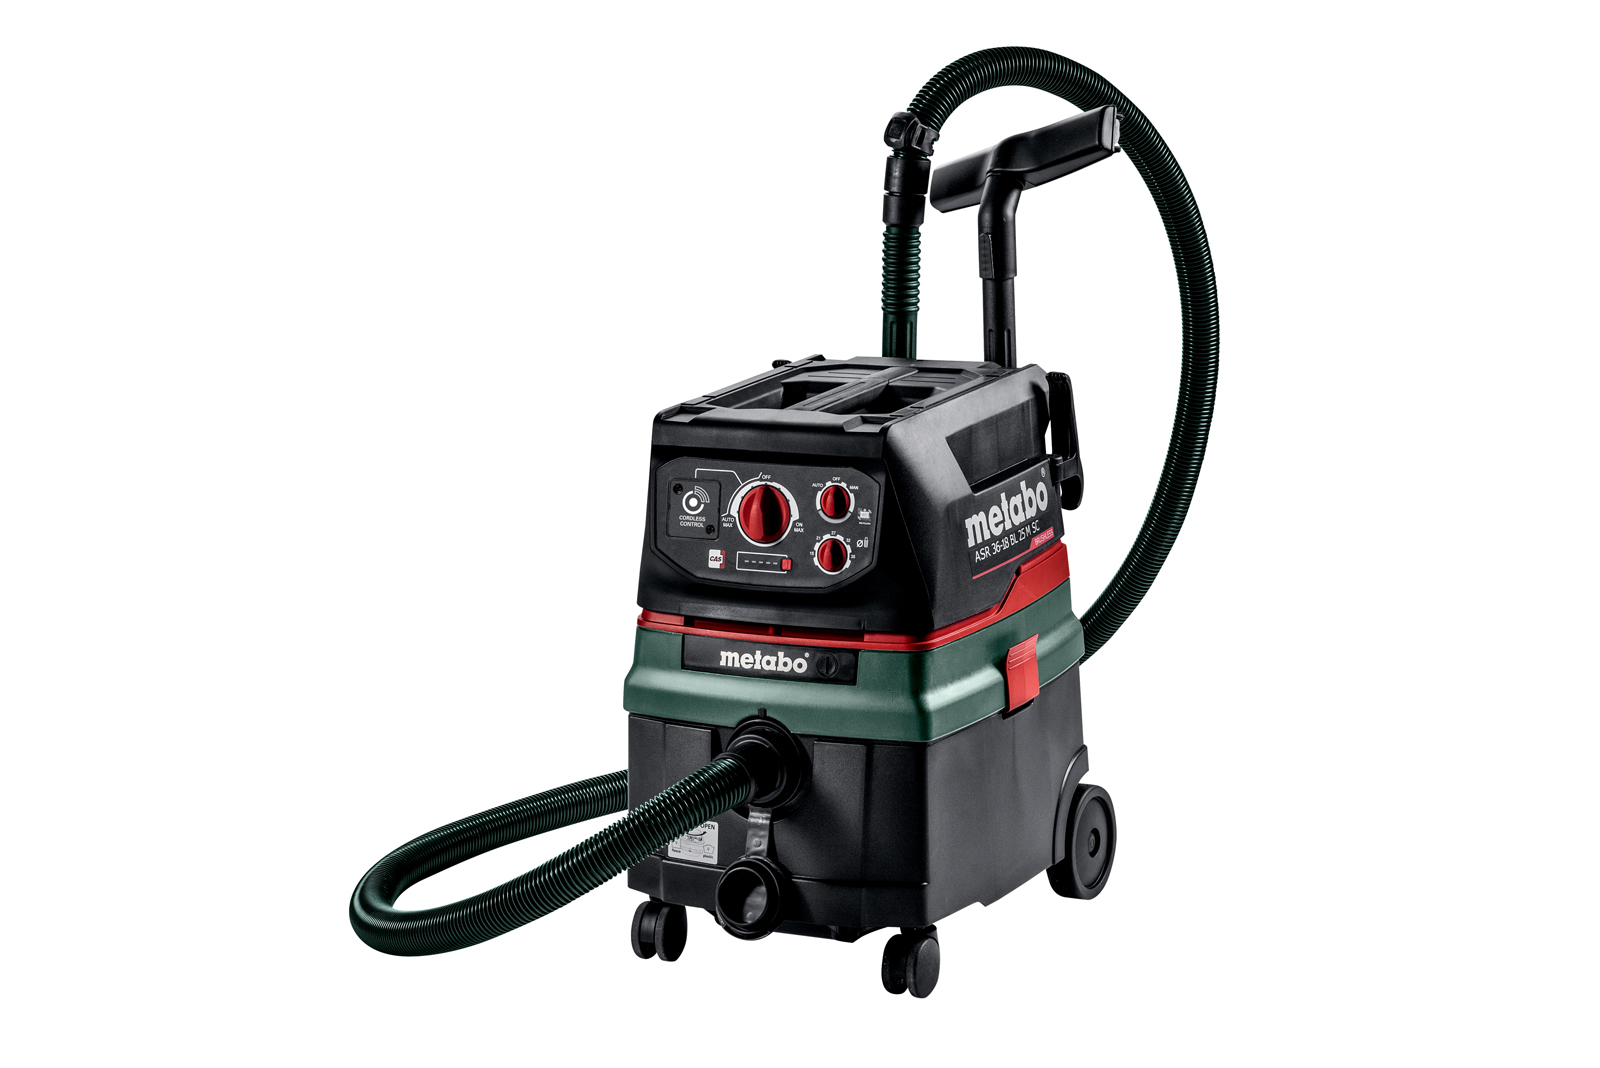 Metabo's new cordless vacuum cleaner